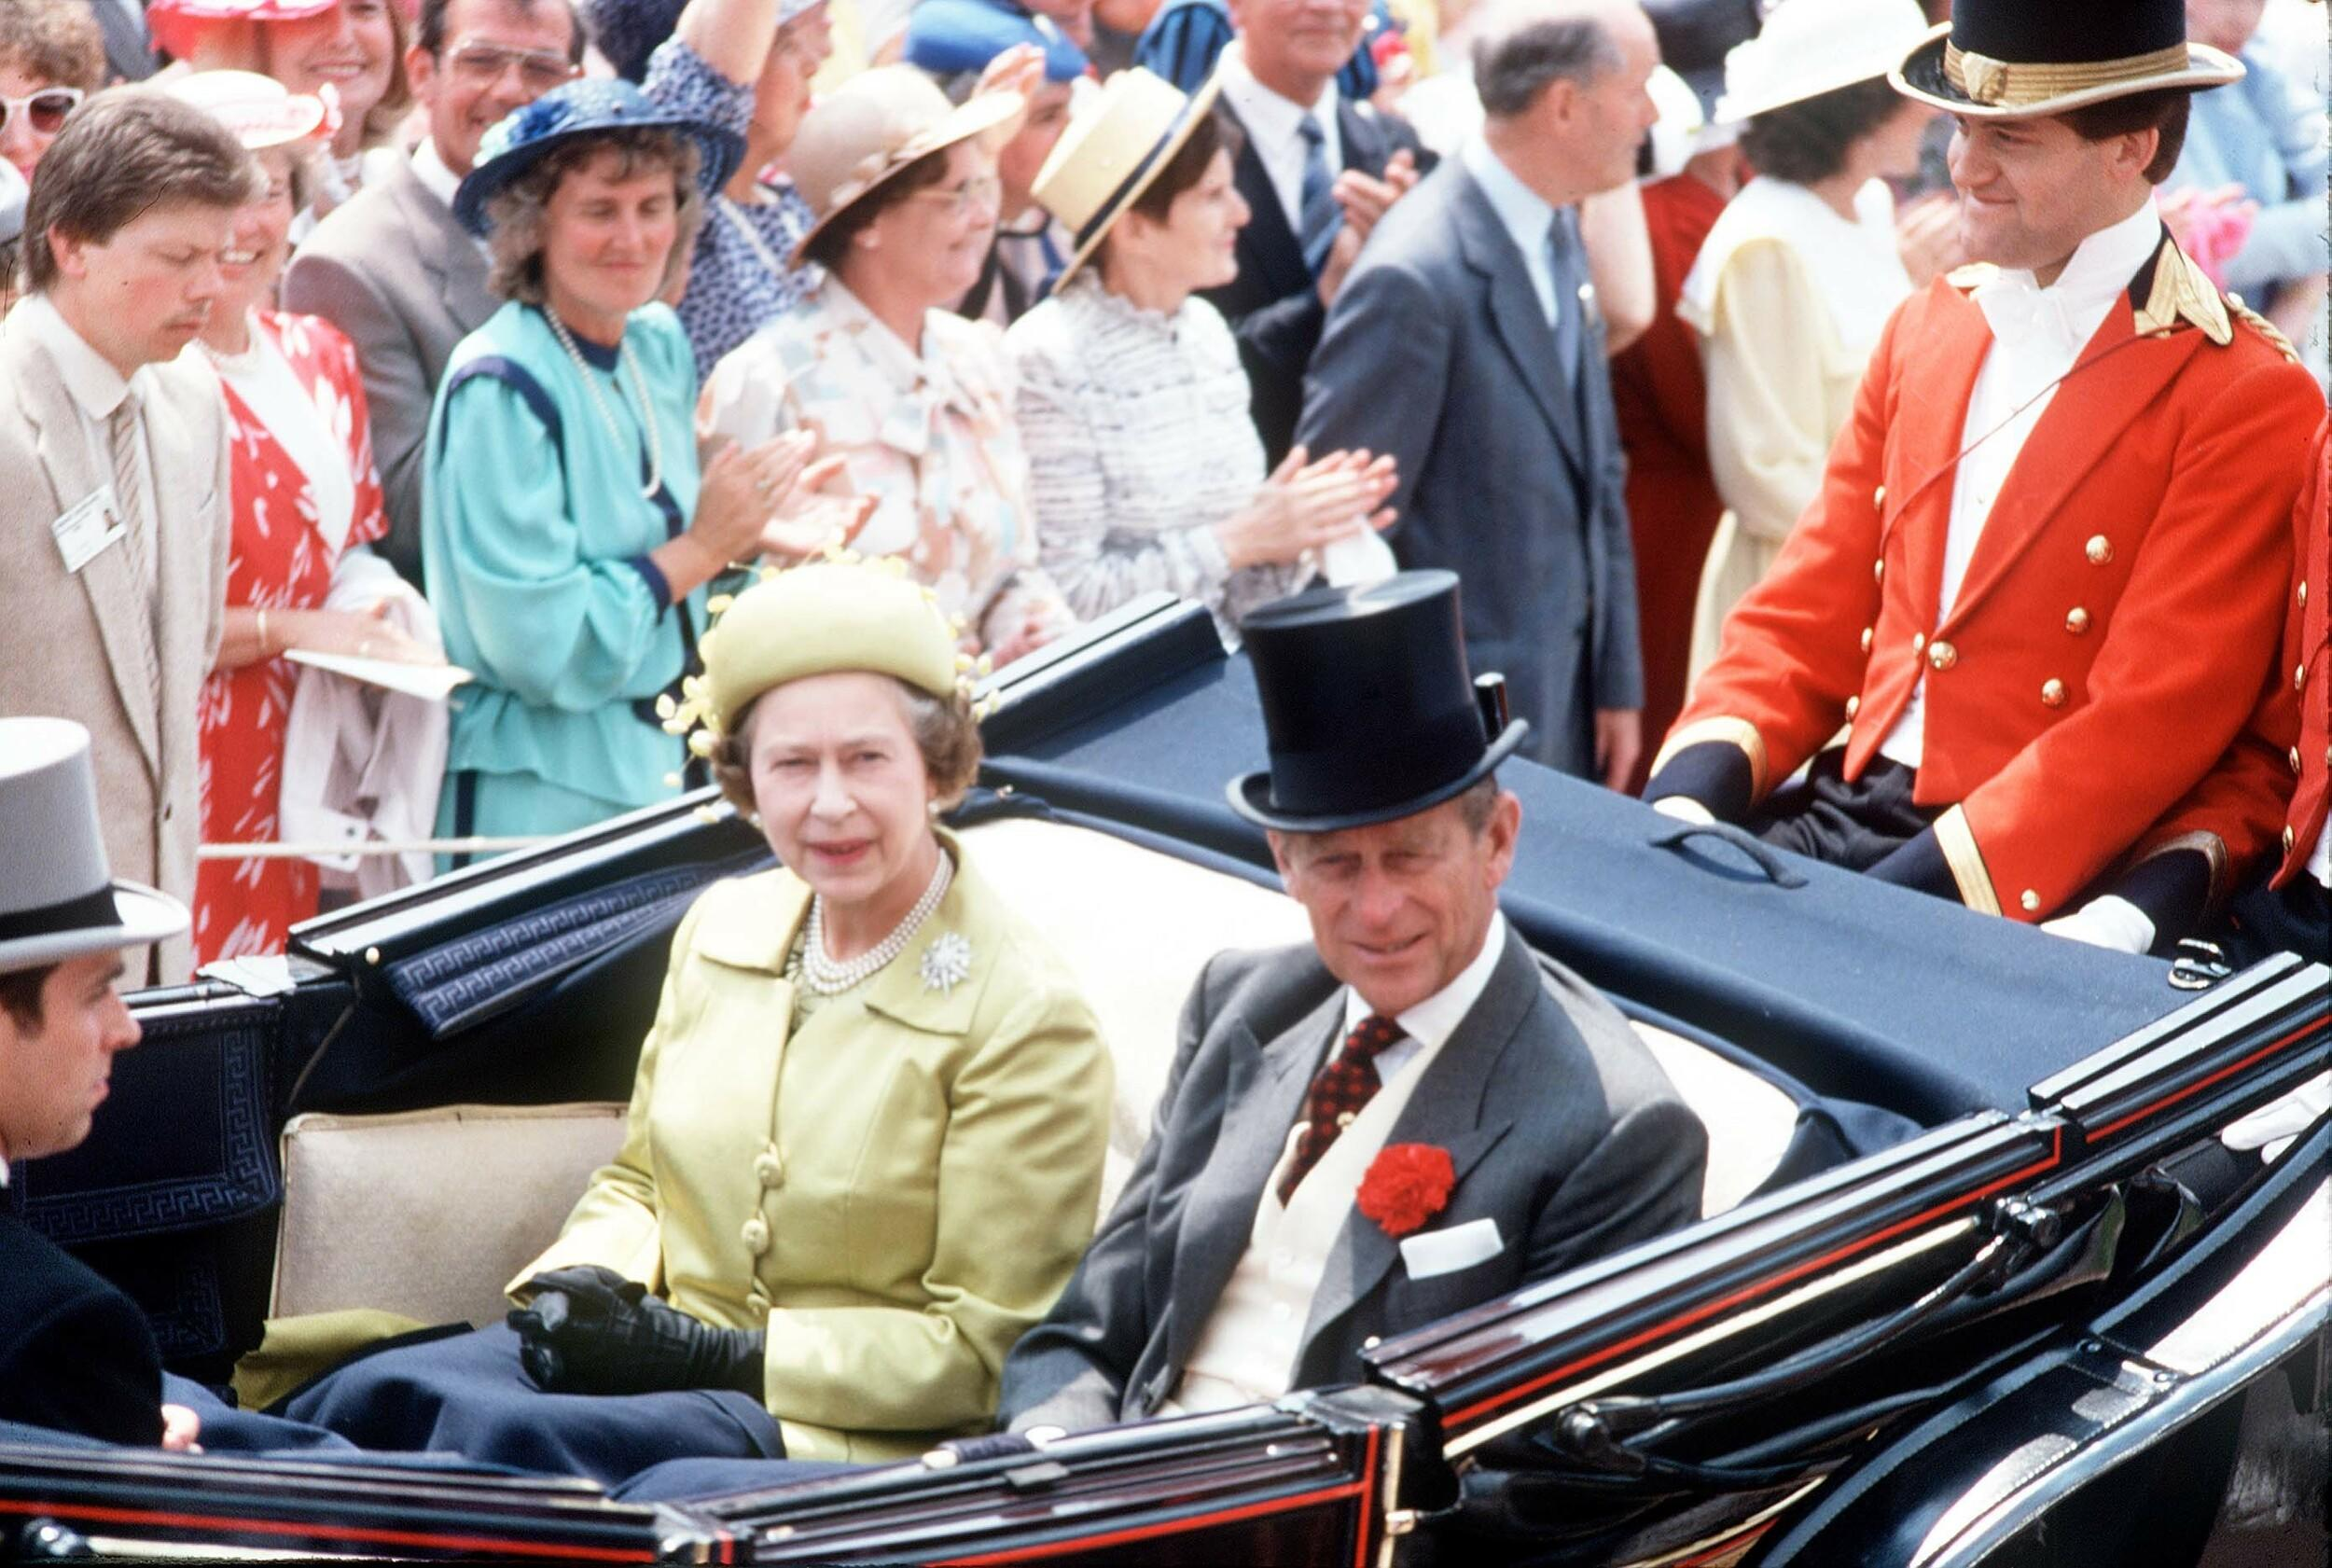 Queen Elizabeth II, the Duke of Edinburgh and the Prince of Wales with butler Paul Burrell, riding at the back of the carriage, at Ascot in June, 1987.